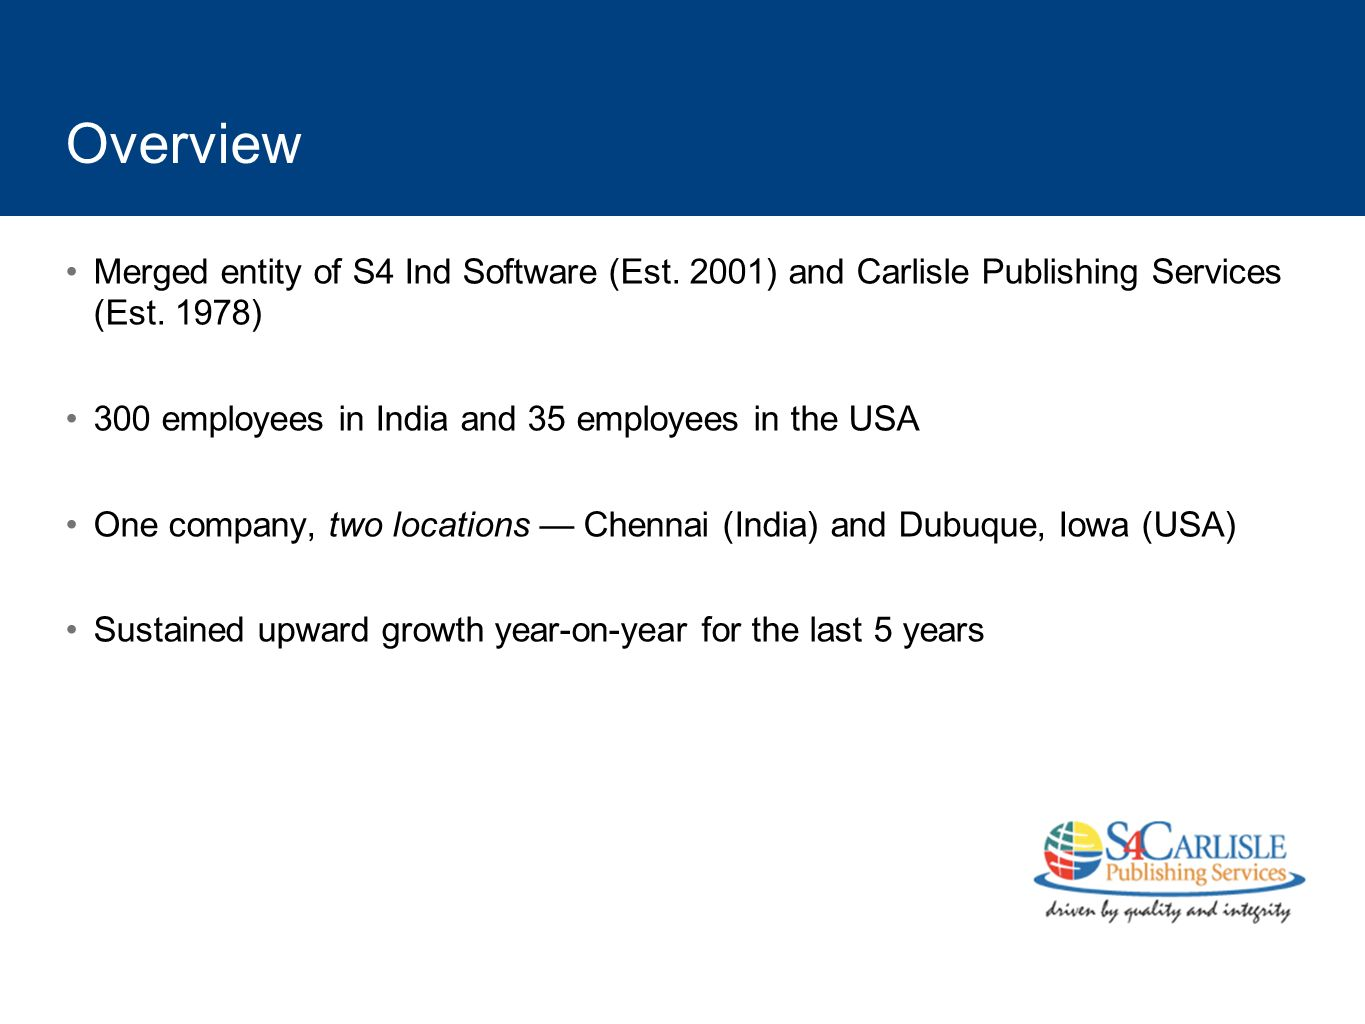 Overview Merged entity of S4 Ind Software (Est. 2001) and Carlisle Publishing Services (Est. 1978) 300 employees in India and 35 employees in the USA